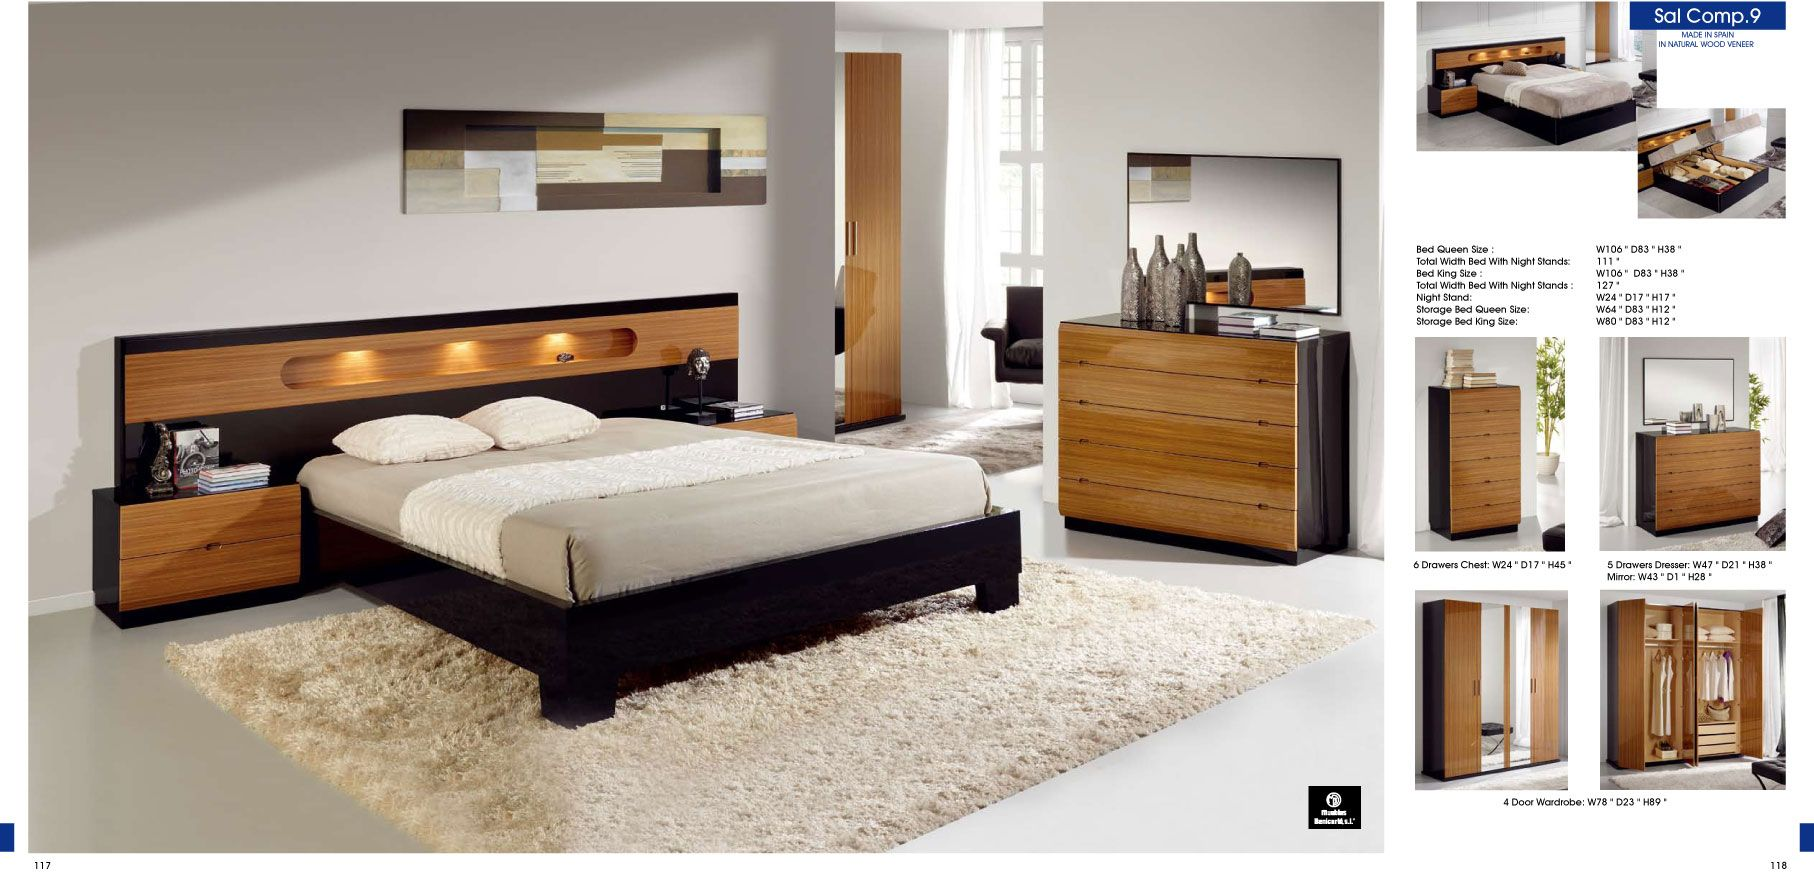 Contemporary Bedroom Furniture Designs Cool Elegant Cheap King Size Bedroom Sets 5 Ikea Bedroom Sets Catalog Review